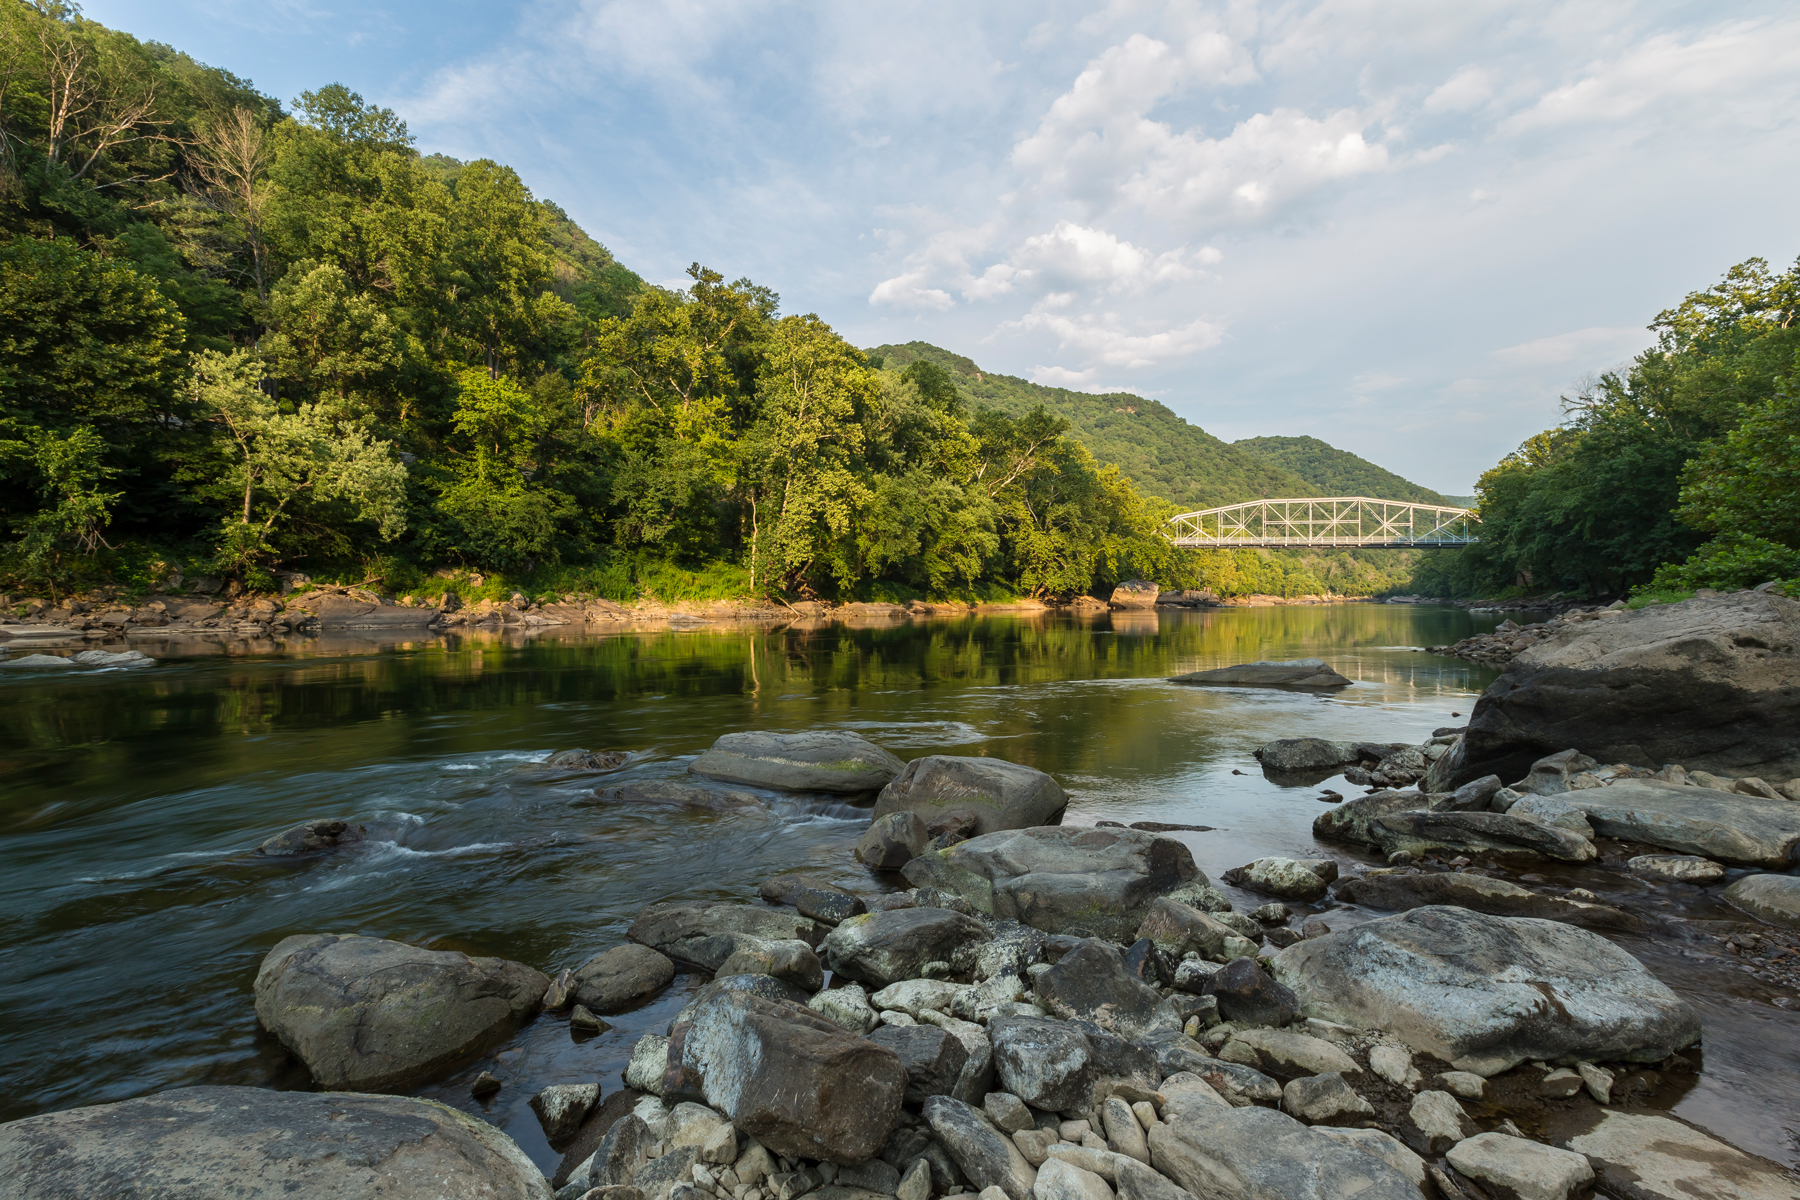 scenic landscape of the New River Gorge